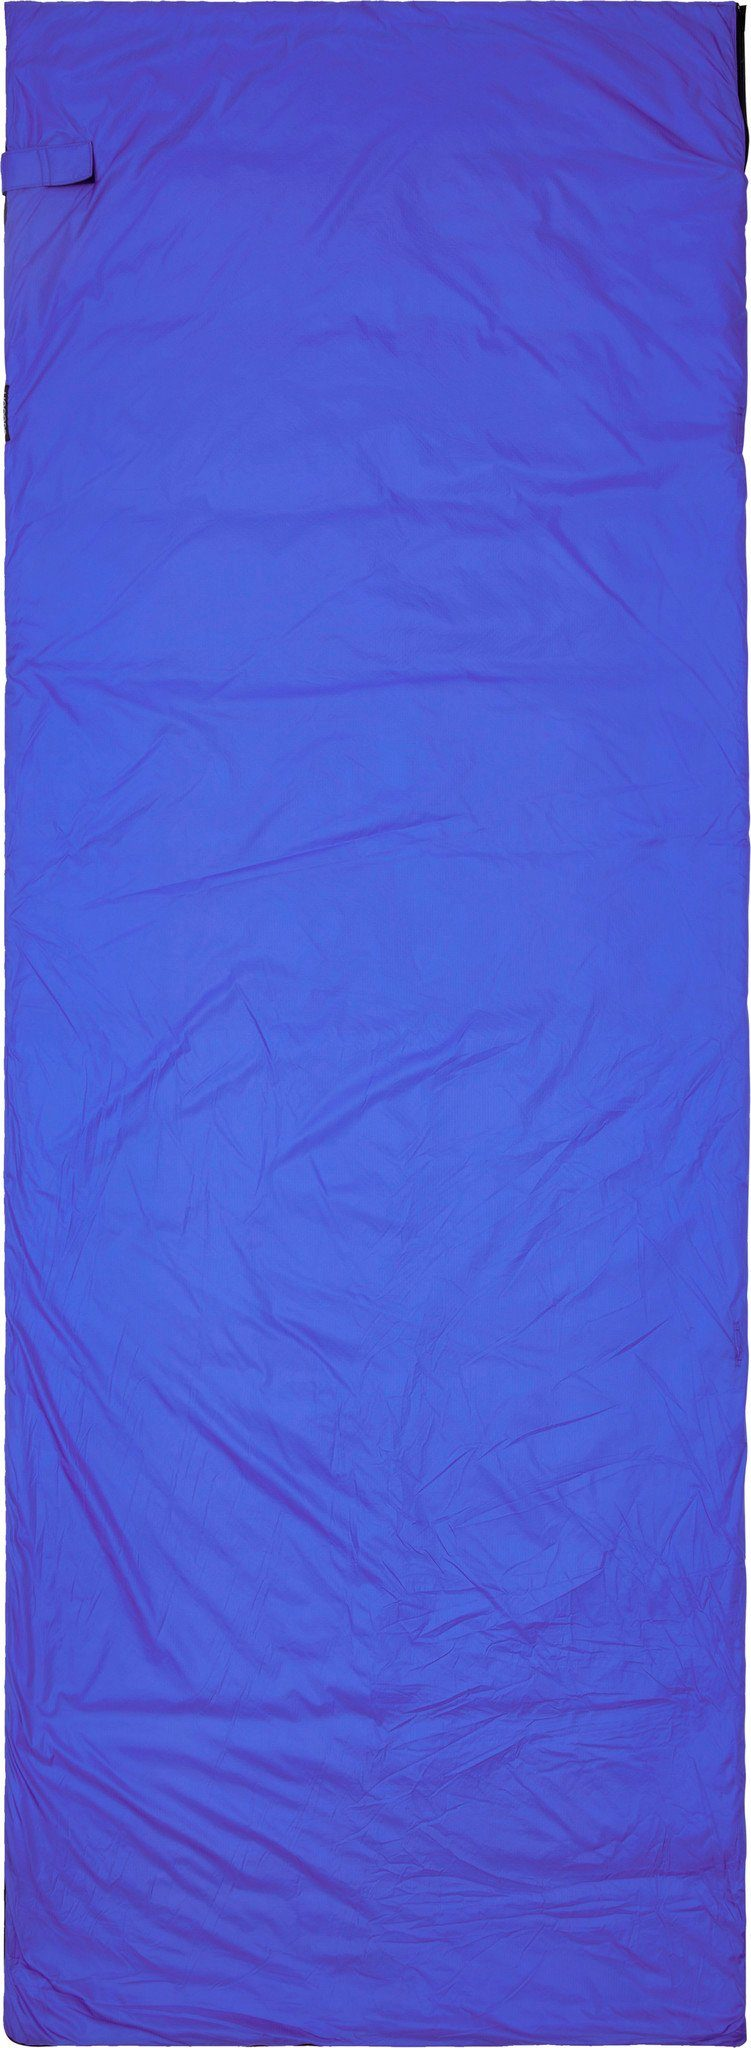 Cocoon Schlafsack »Cocoon Tropic Traveler Sleeping Bag Silk Long«